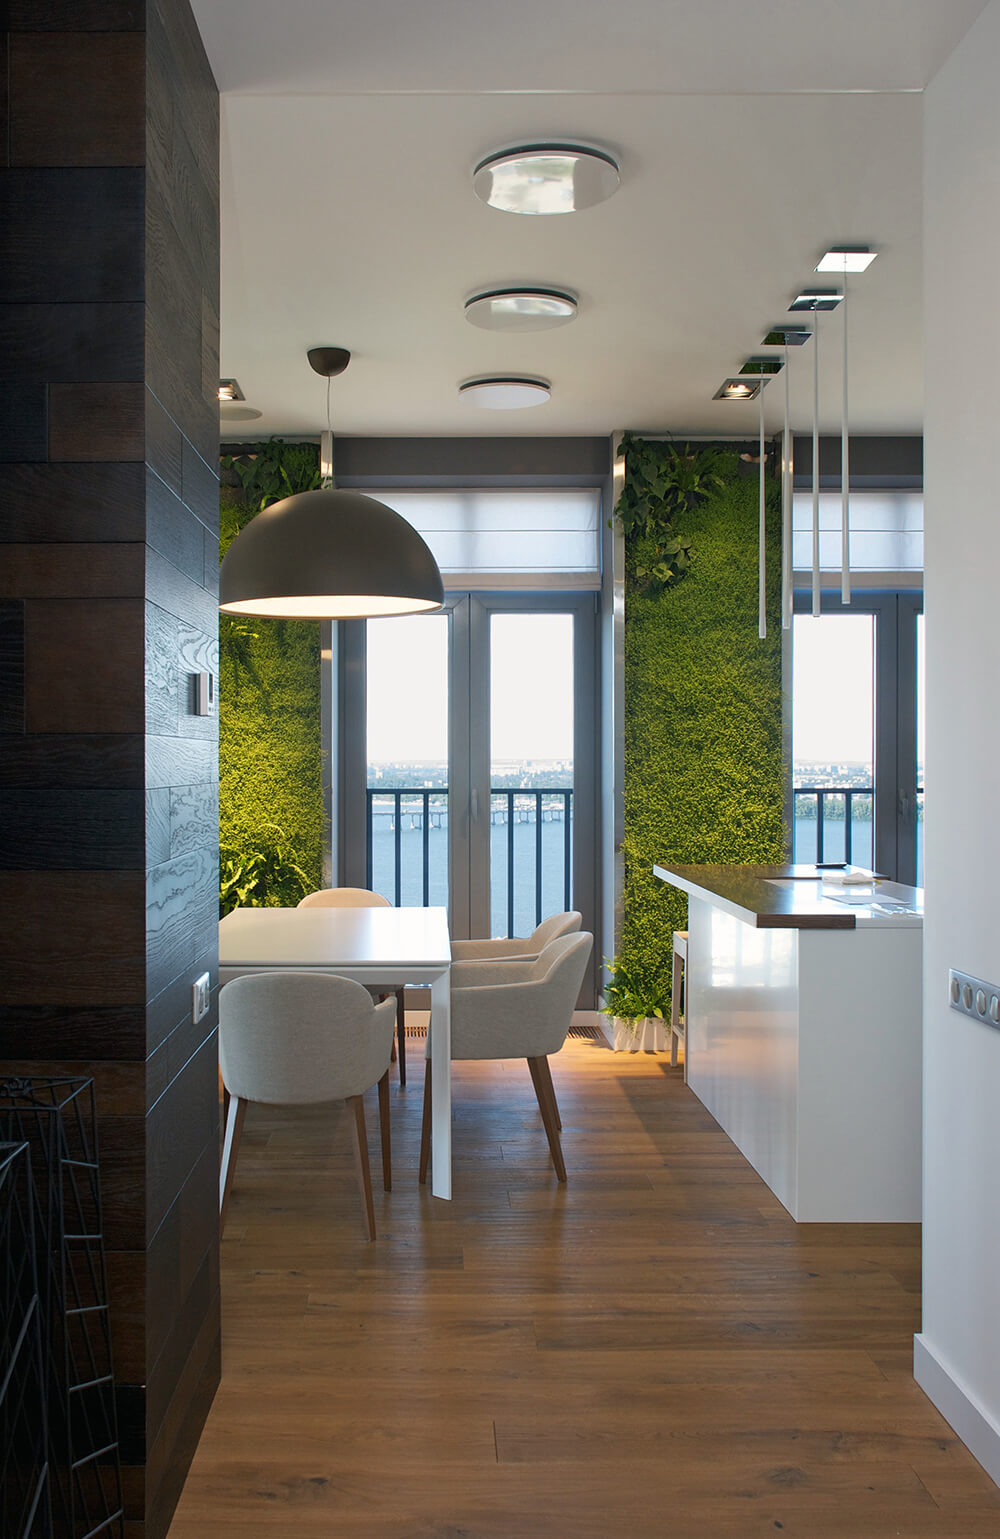 As we approach the entrance to the dining room, we see that the left wall transitions back to a rich wooden panel. This is also our first glimpse of the green walls that give this home its moniker.